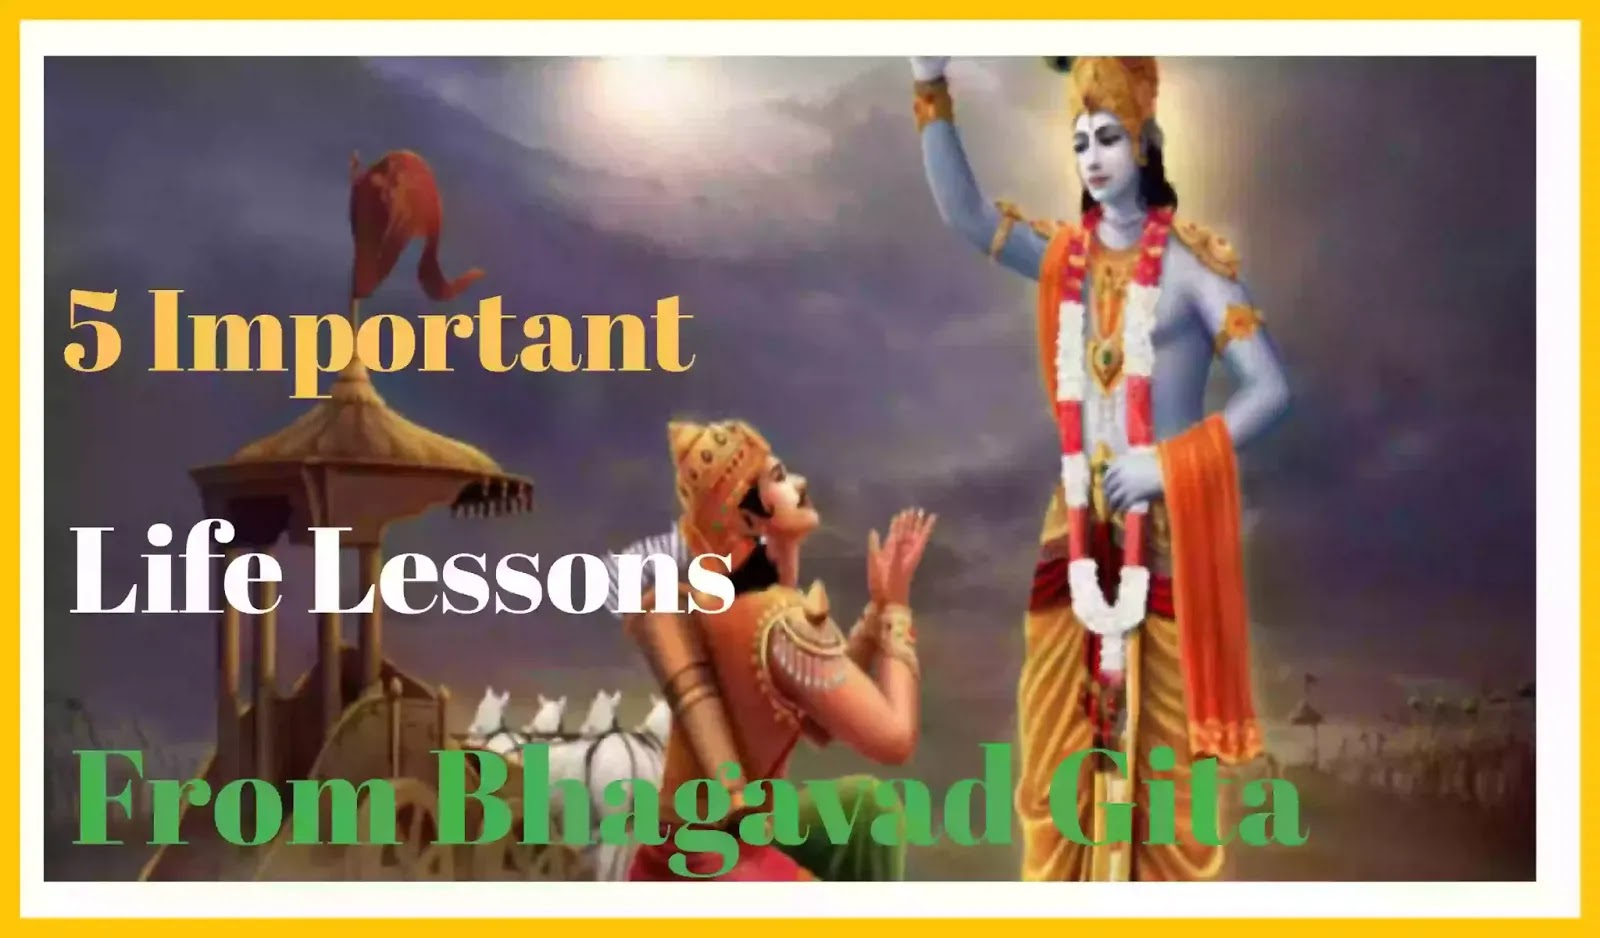 Here we have provided 5 Important Life Lessons of Bhagavad Gita, and this picture shows Krishna and Arjun.